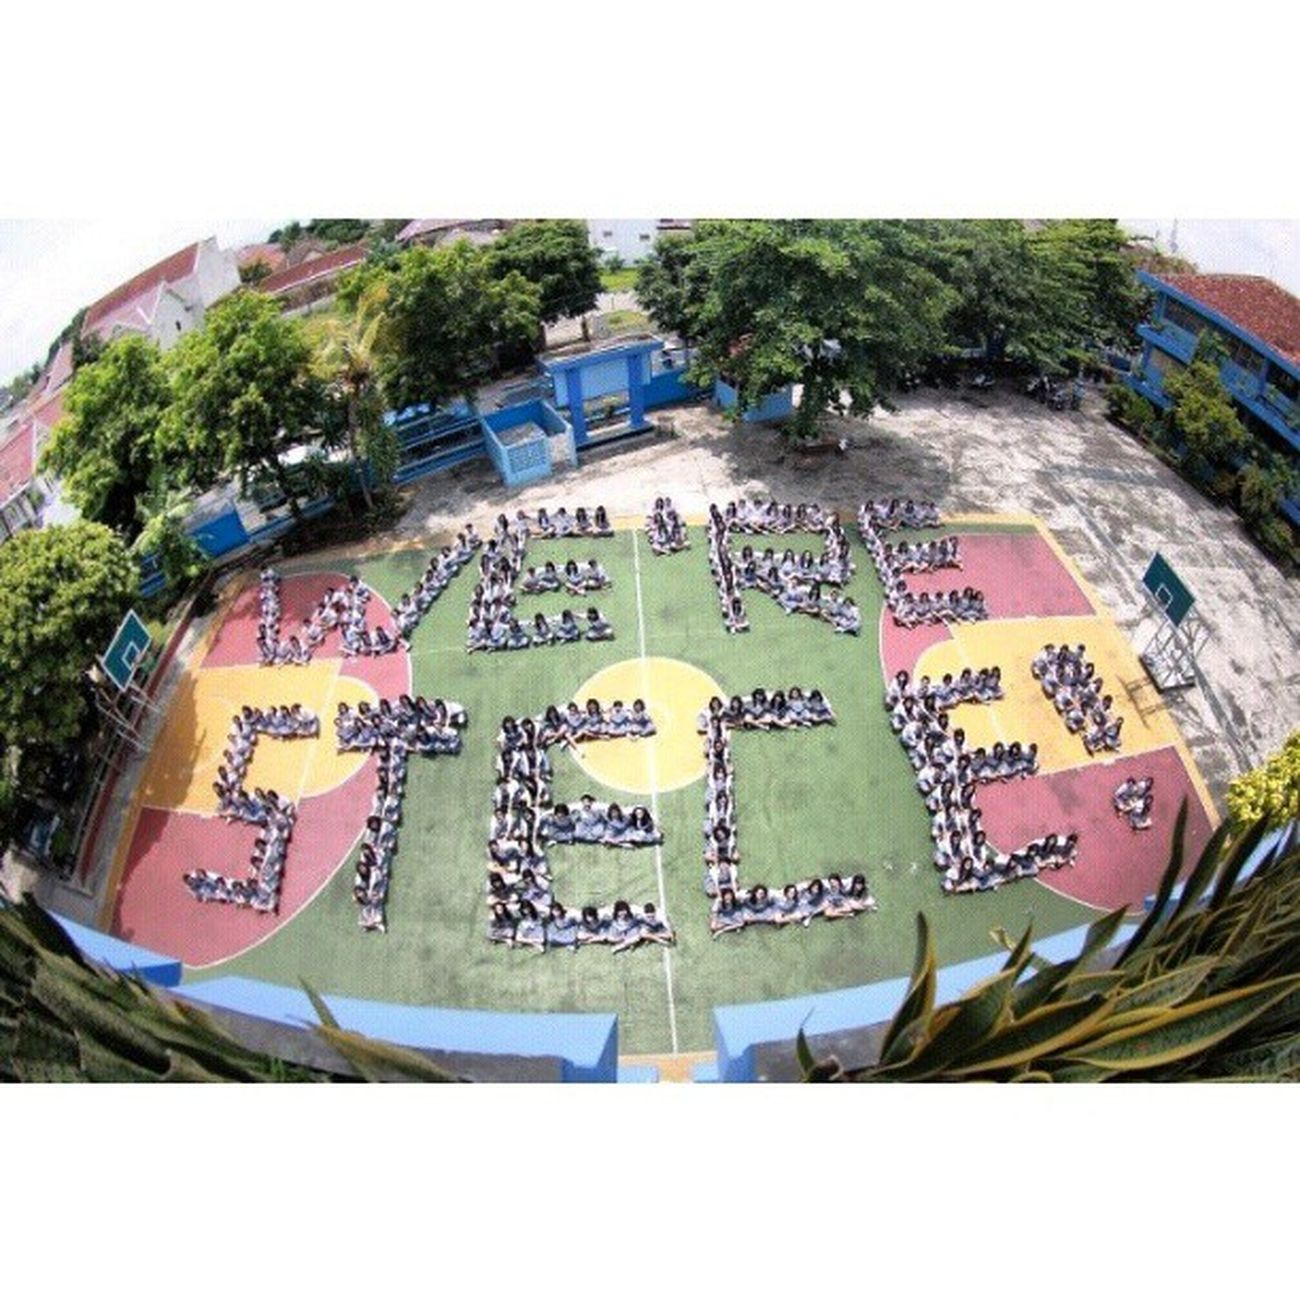 We're STECE Stece Stece1 Highschool Homogen tarakanita yogyakarta